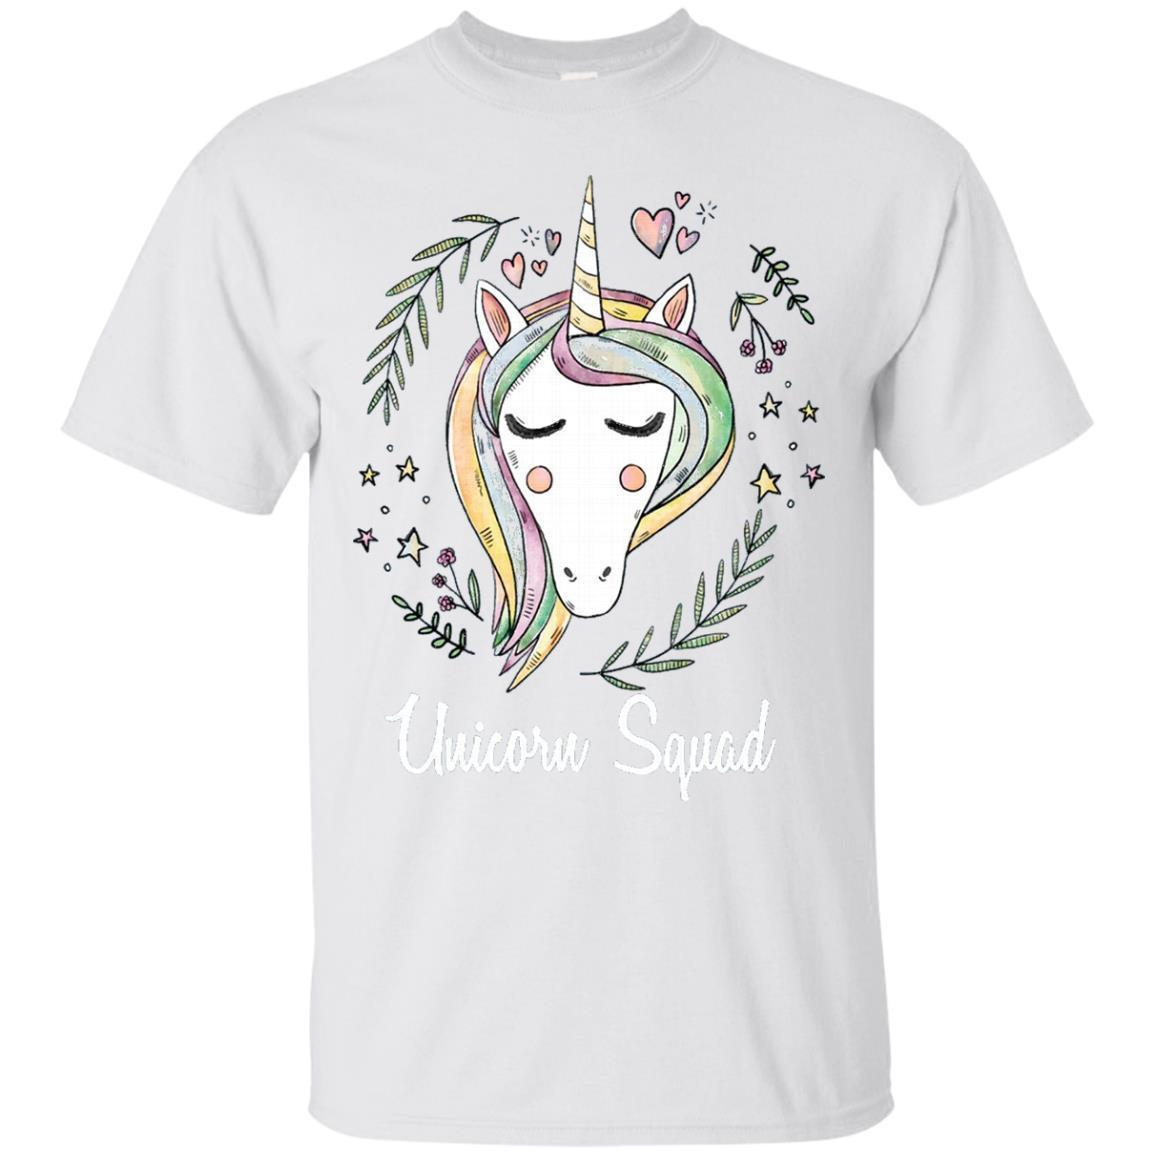 Unicorn Squad Funny Tee T Shirt Cute Unicorn Humor – T-Shirt